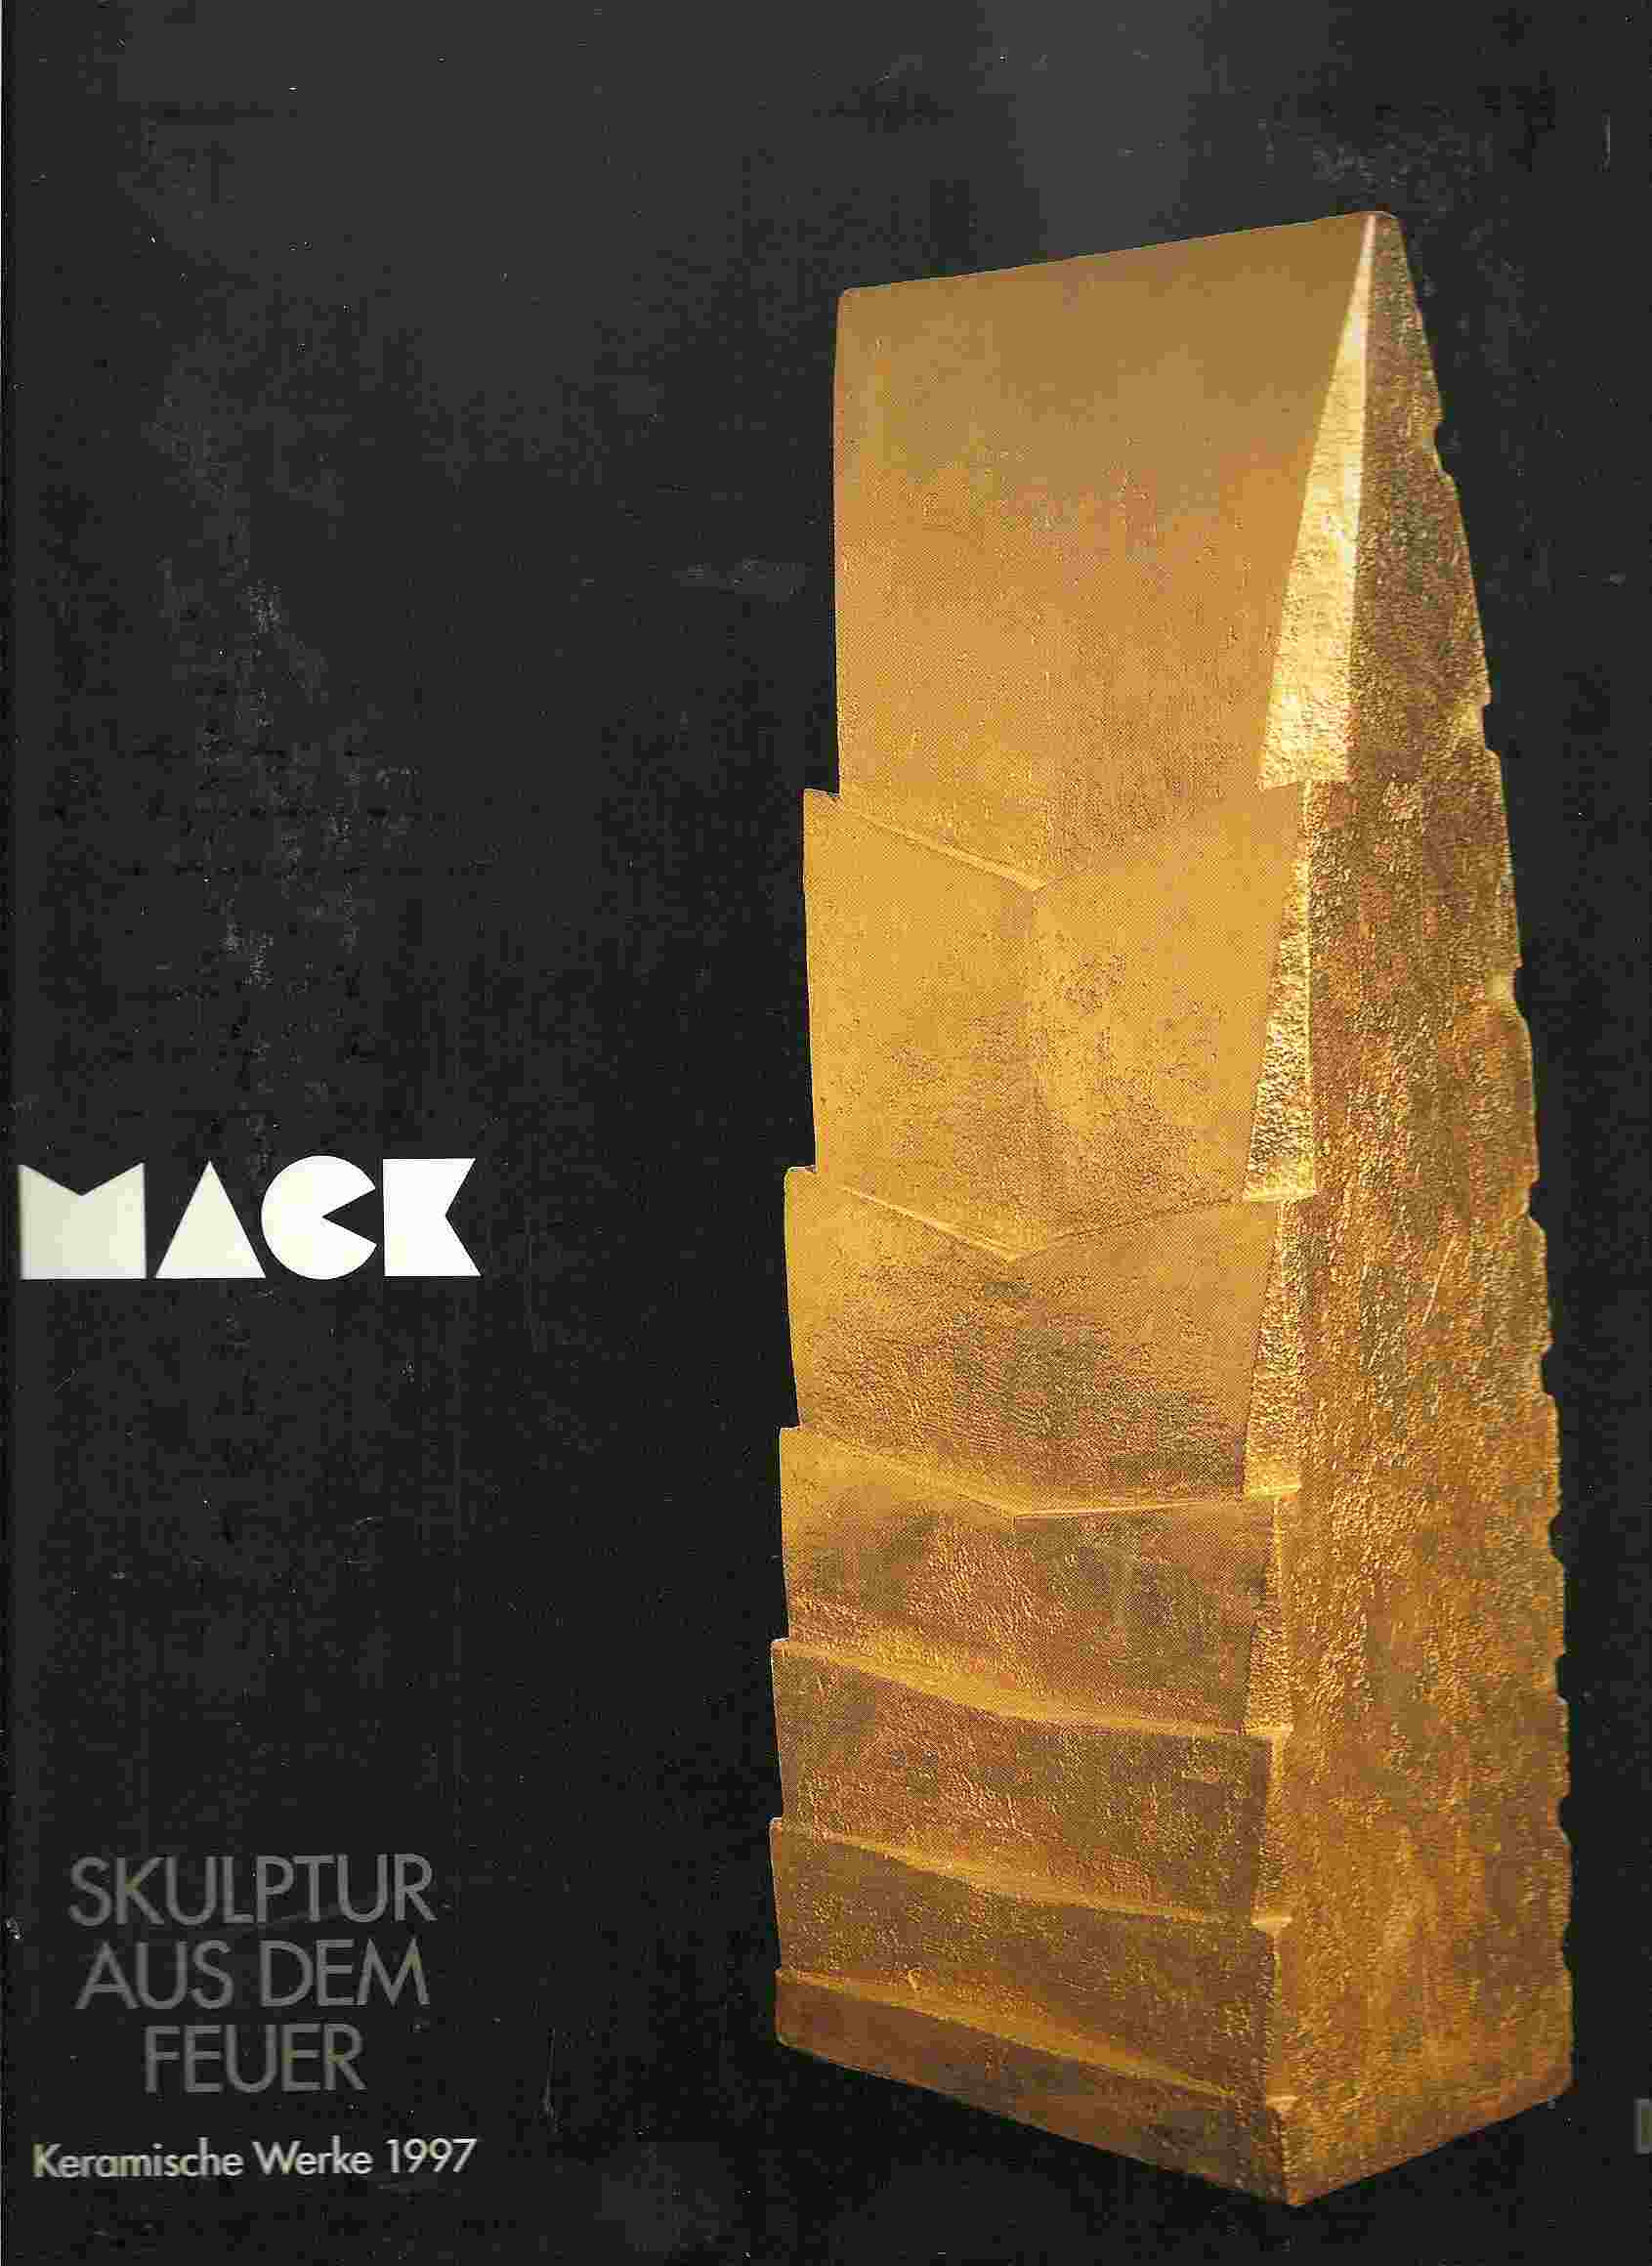 Image for MACK: SKULPTUR AUS DEM FEUER Keramische Werke 1997 (Heinz Mack: Sculpture from Fire: Ceramic Works 1997)